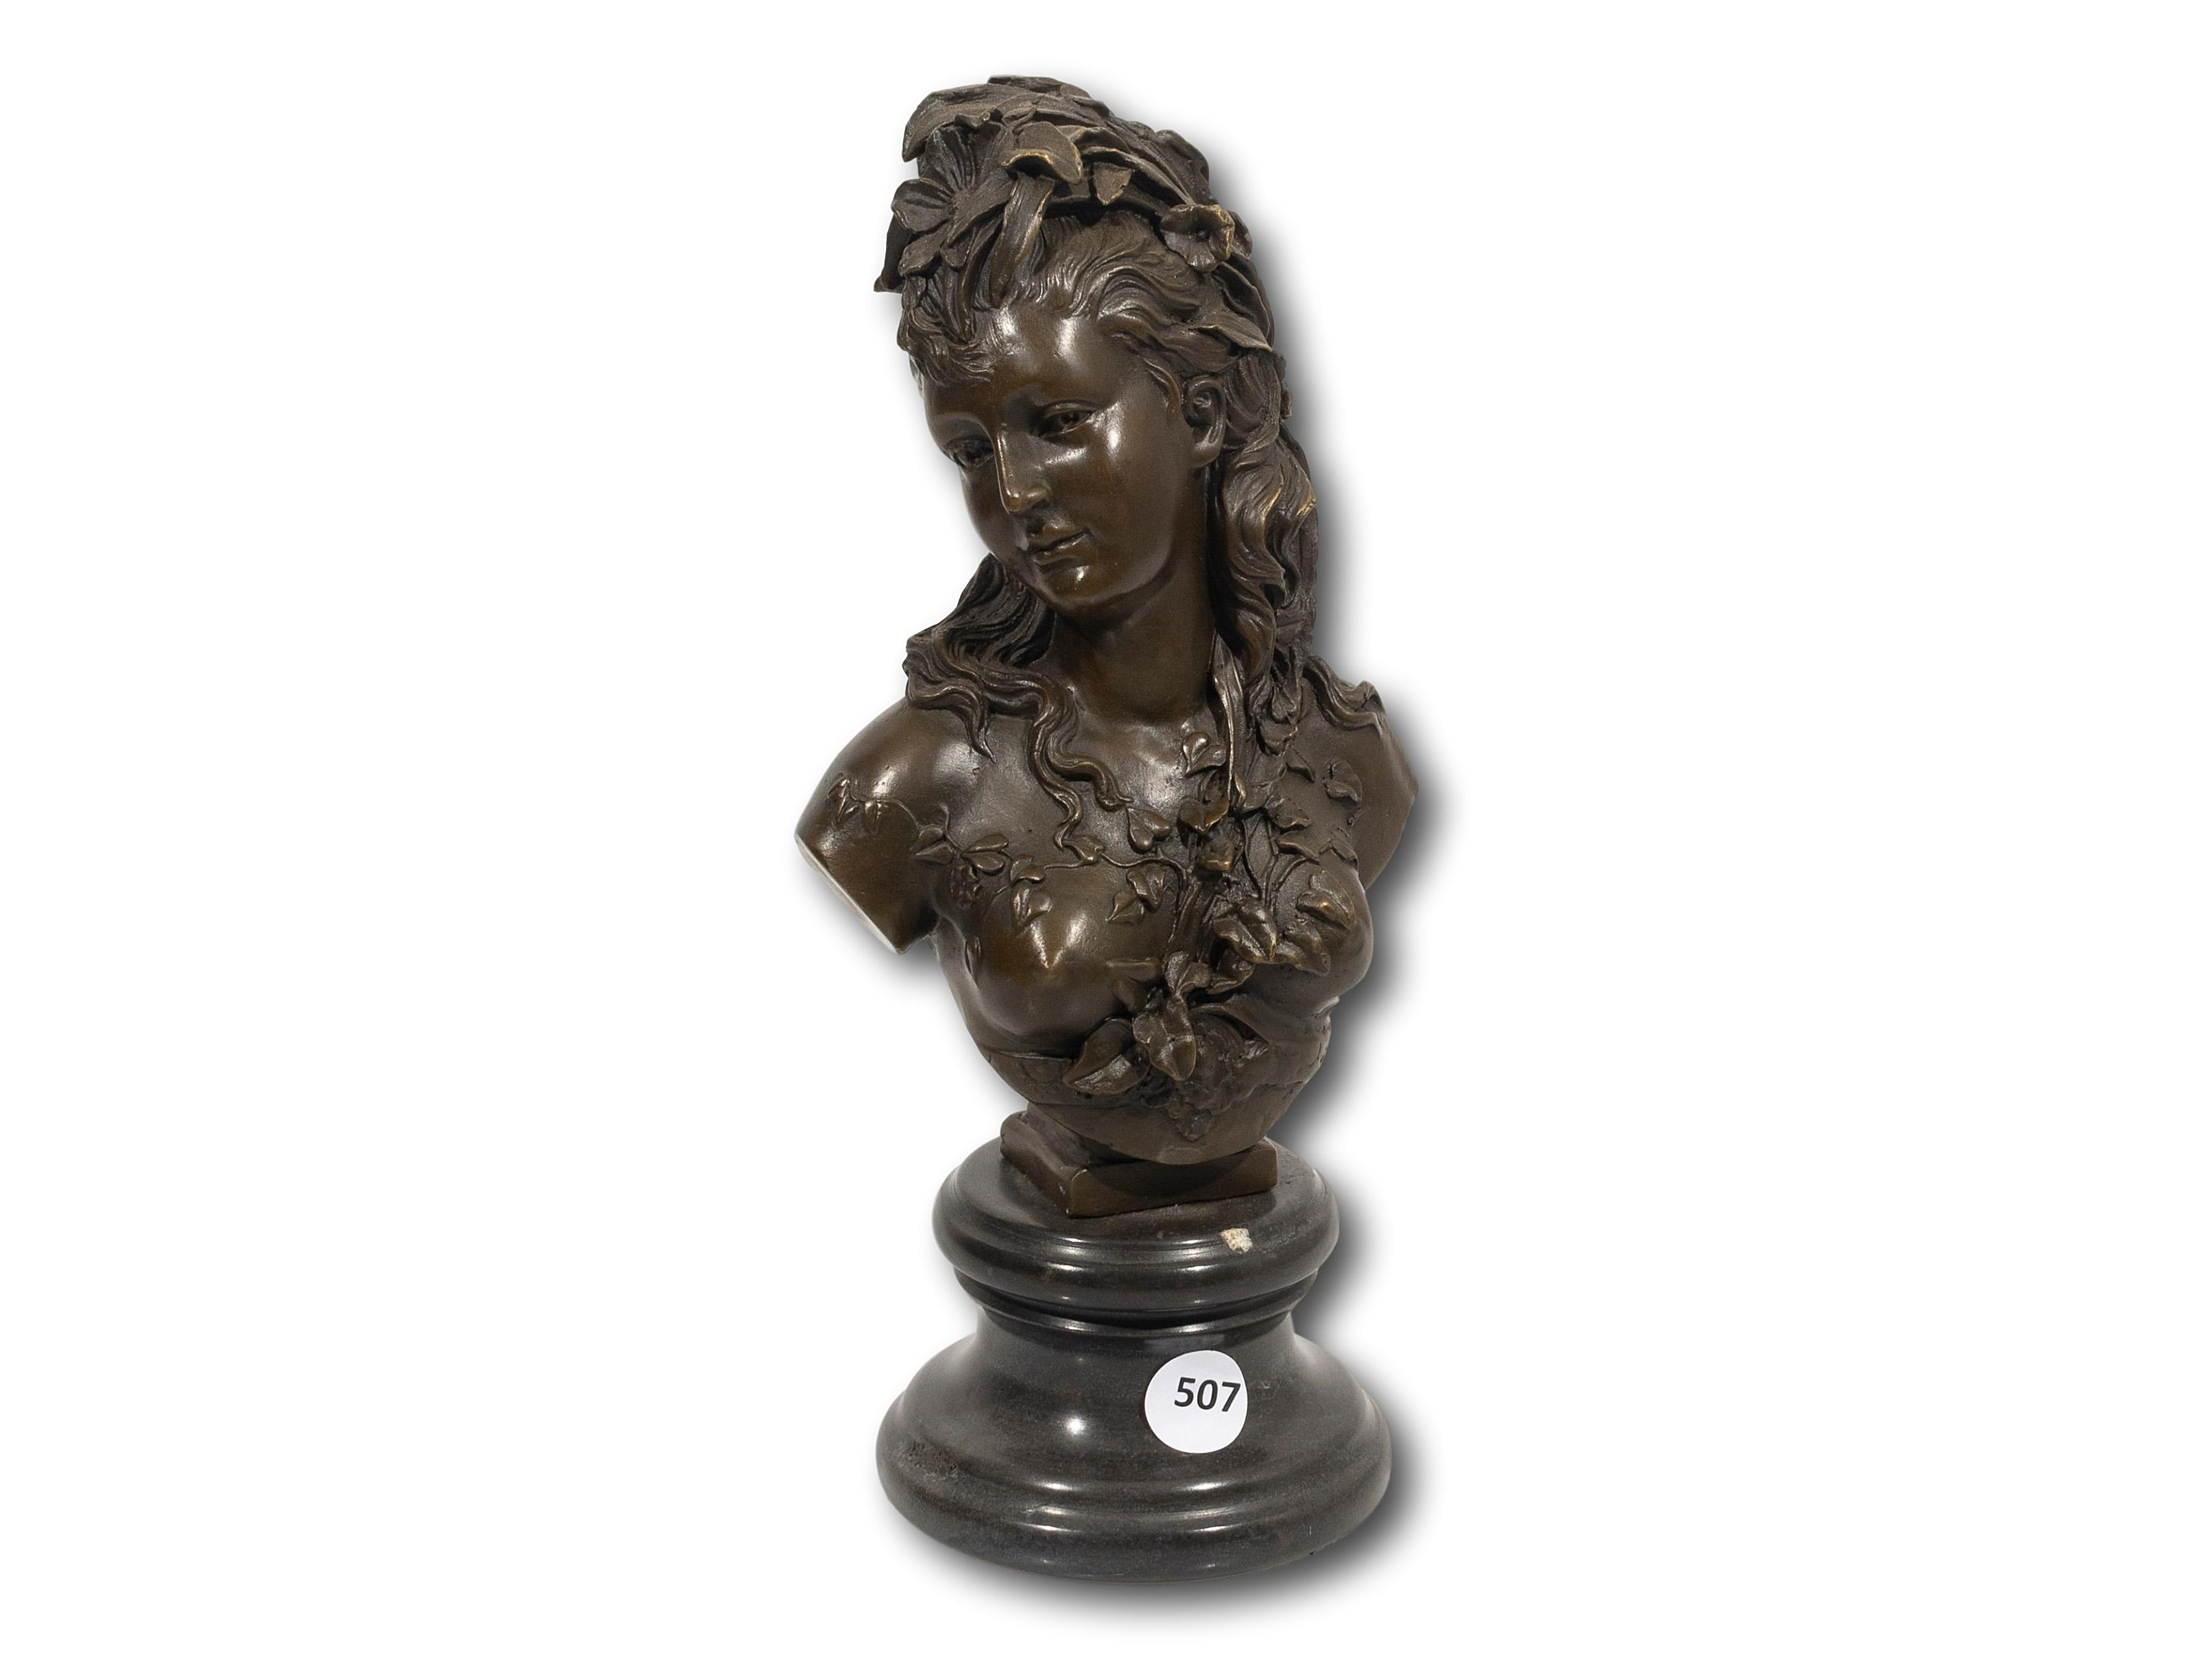 After Albert Ernest Carrier-Belleuse (French 1824 - 1887) Bronze, Bust of a Classical Female Figure, Signed, 26cm including base